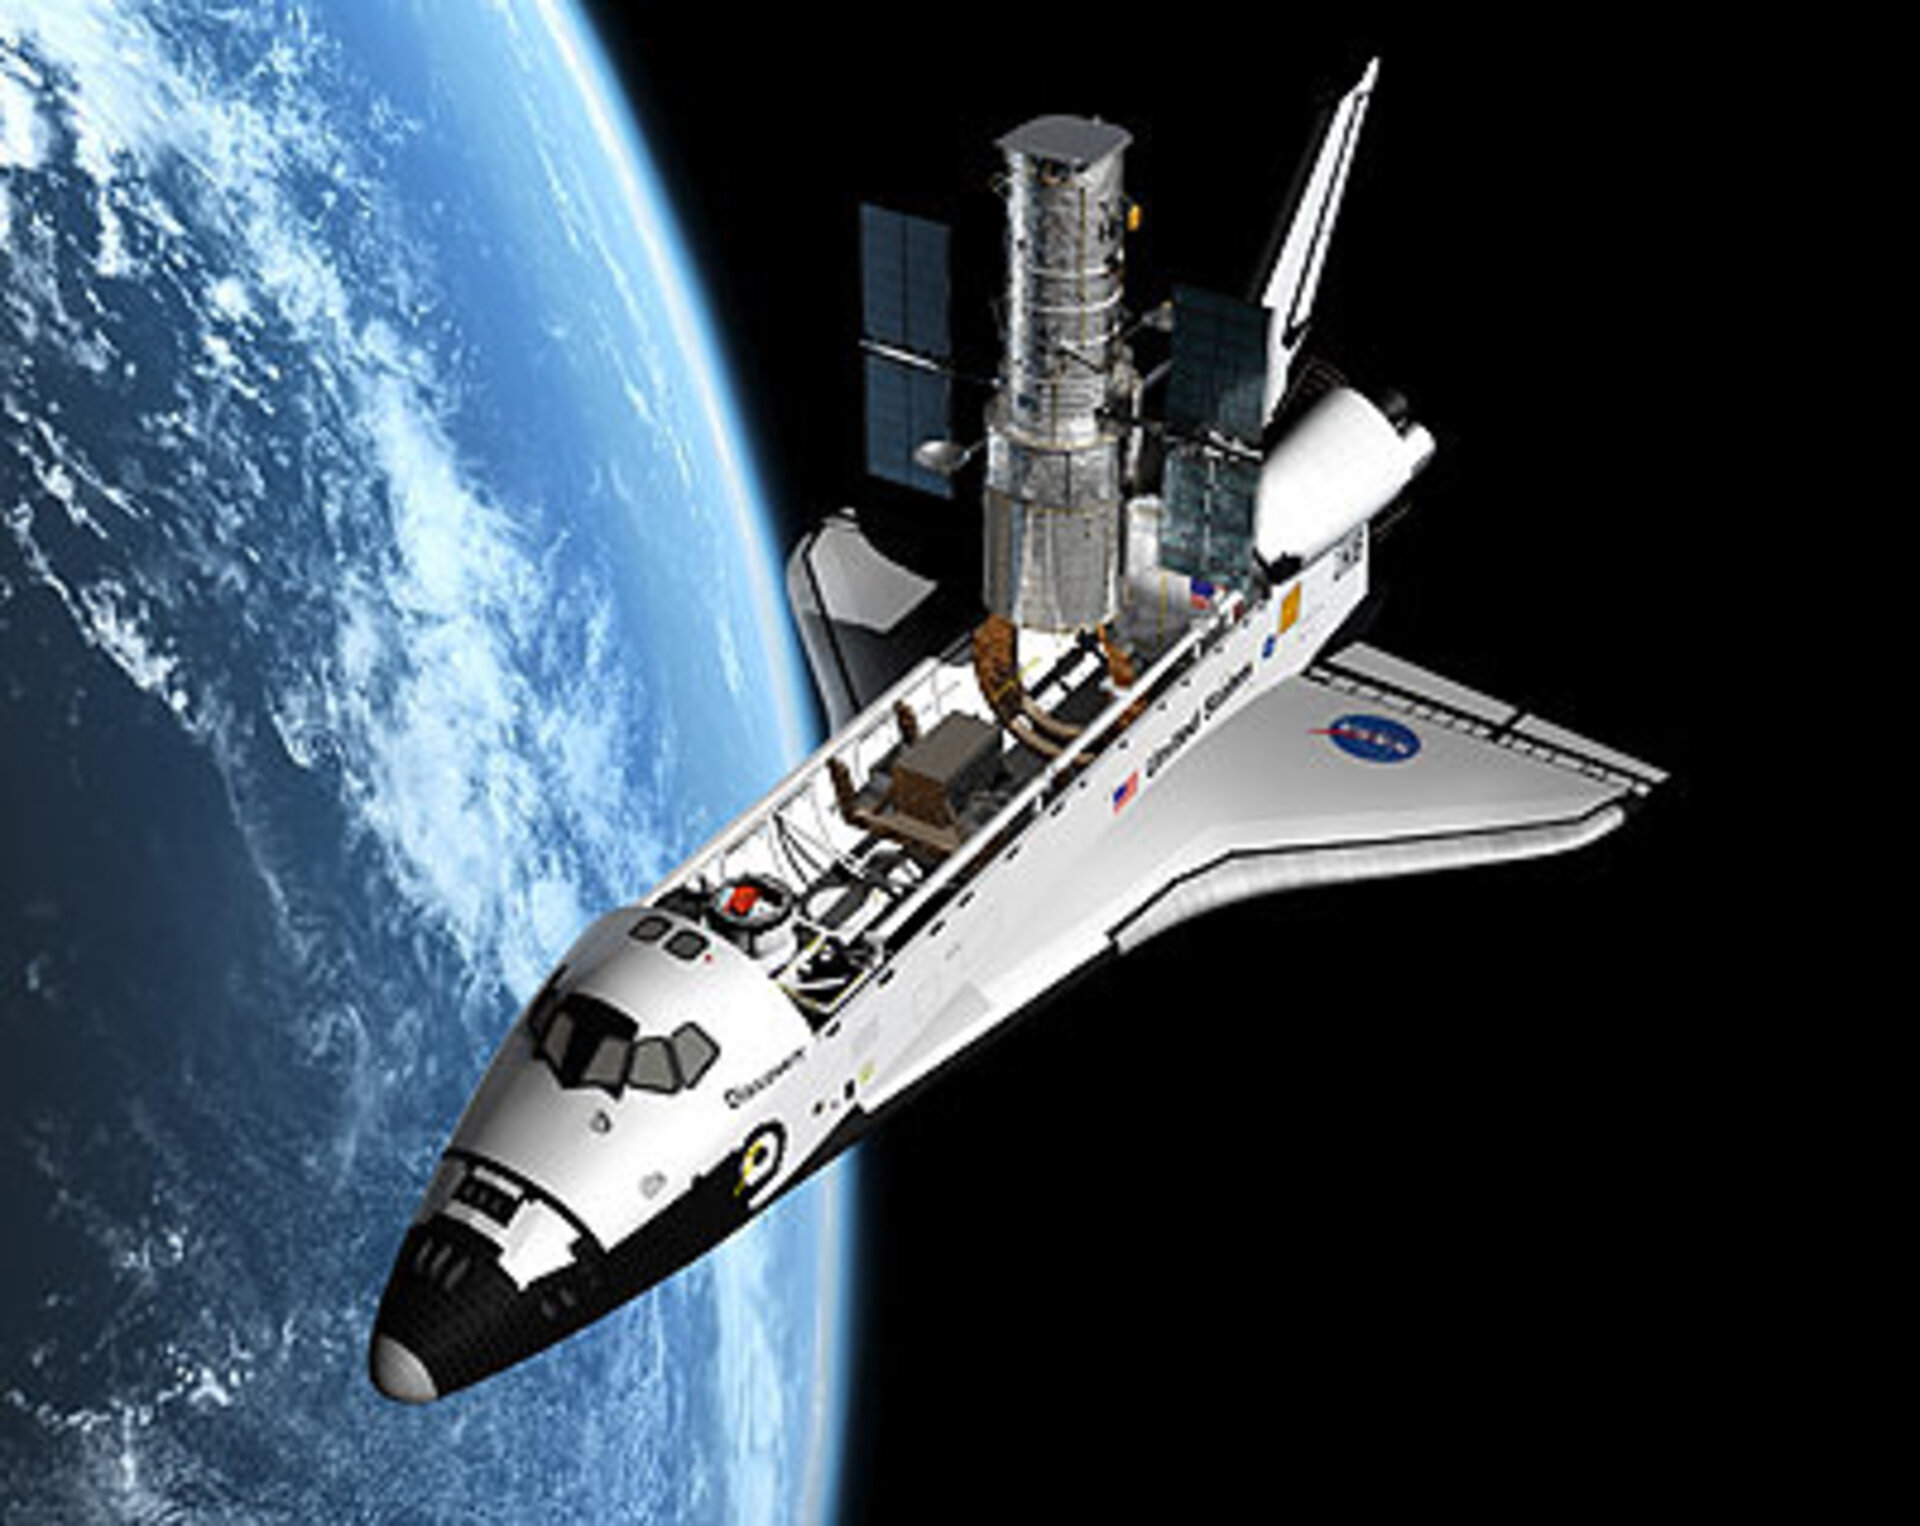 Shuttle Servicing Mission zum Hubble-Teleskop - graphische Darstellung